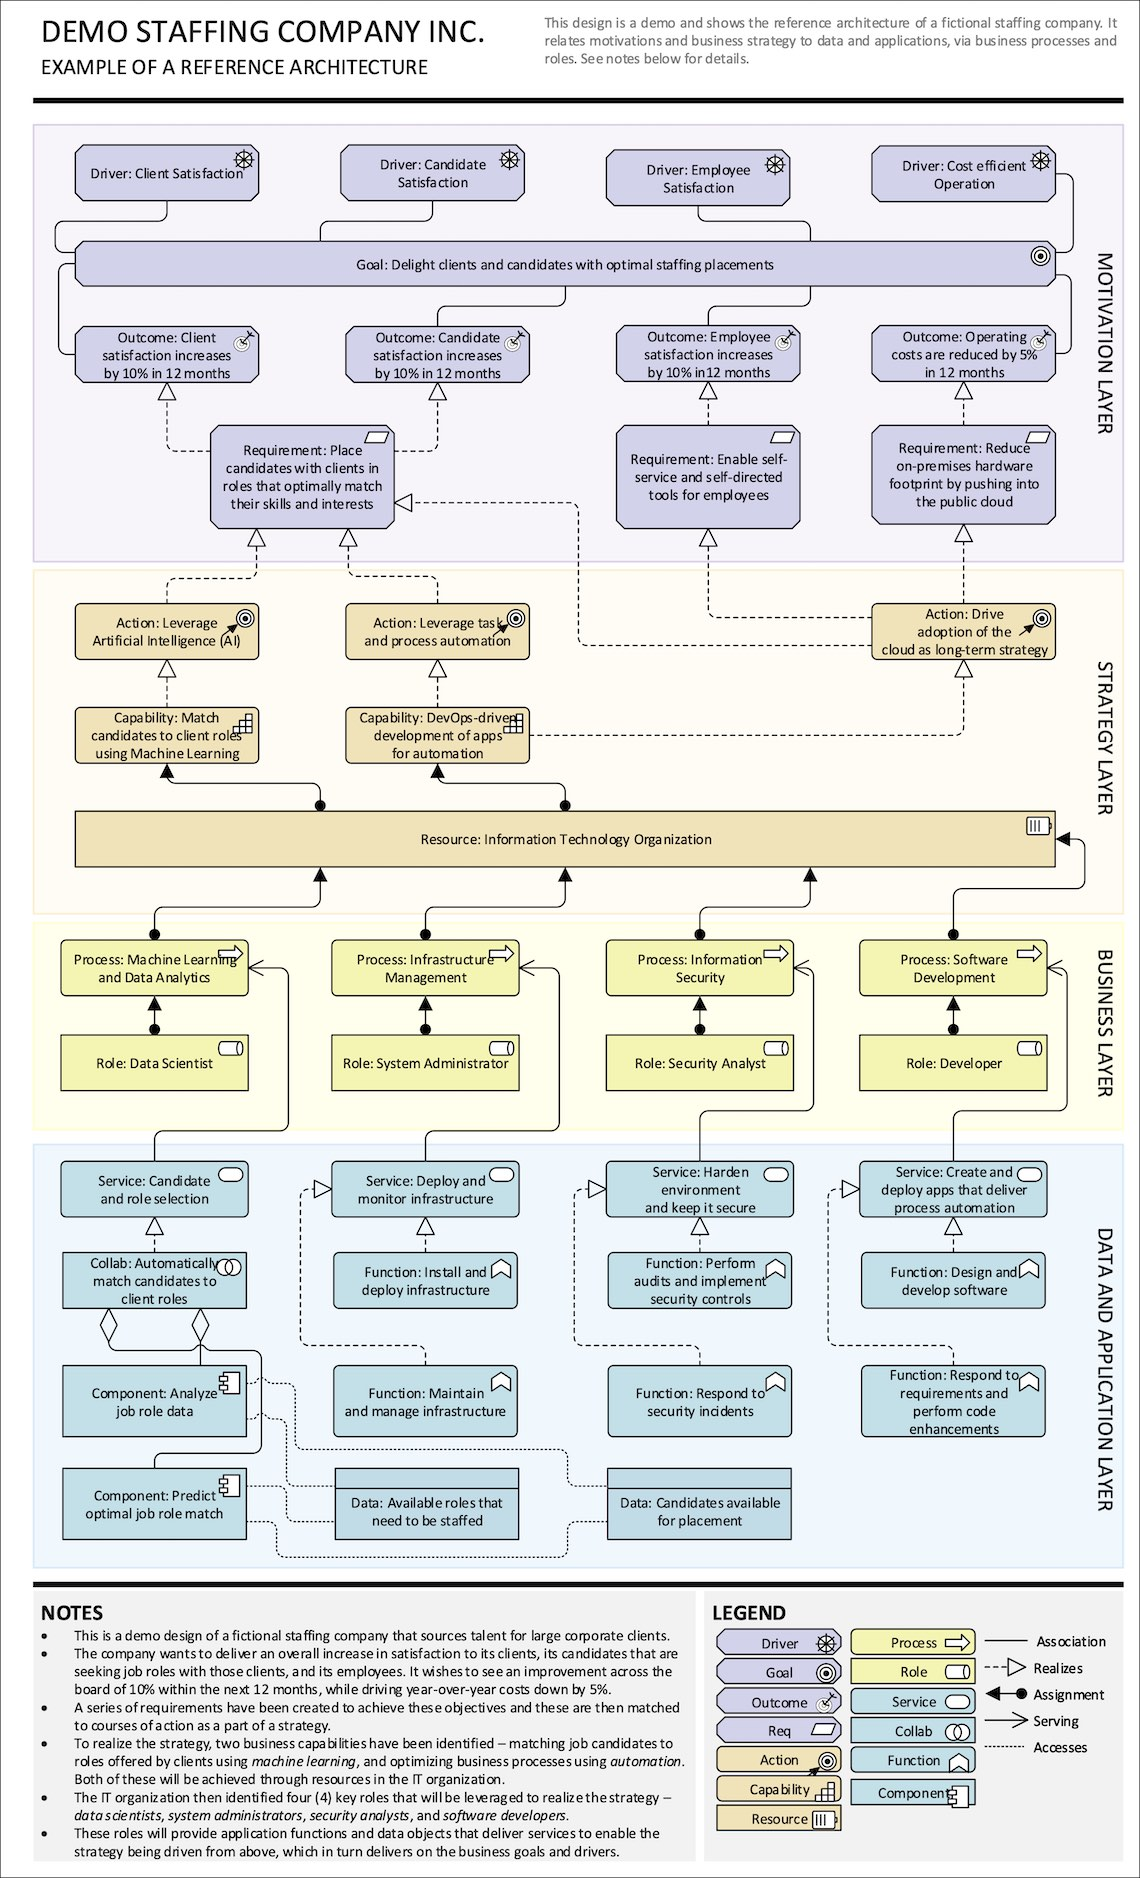 Complete reference architecture